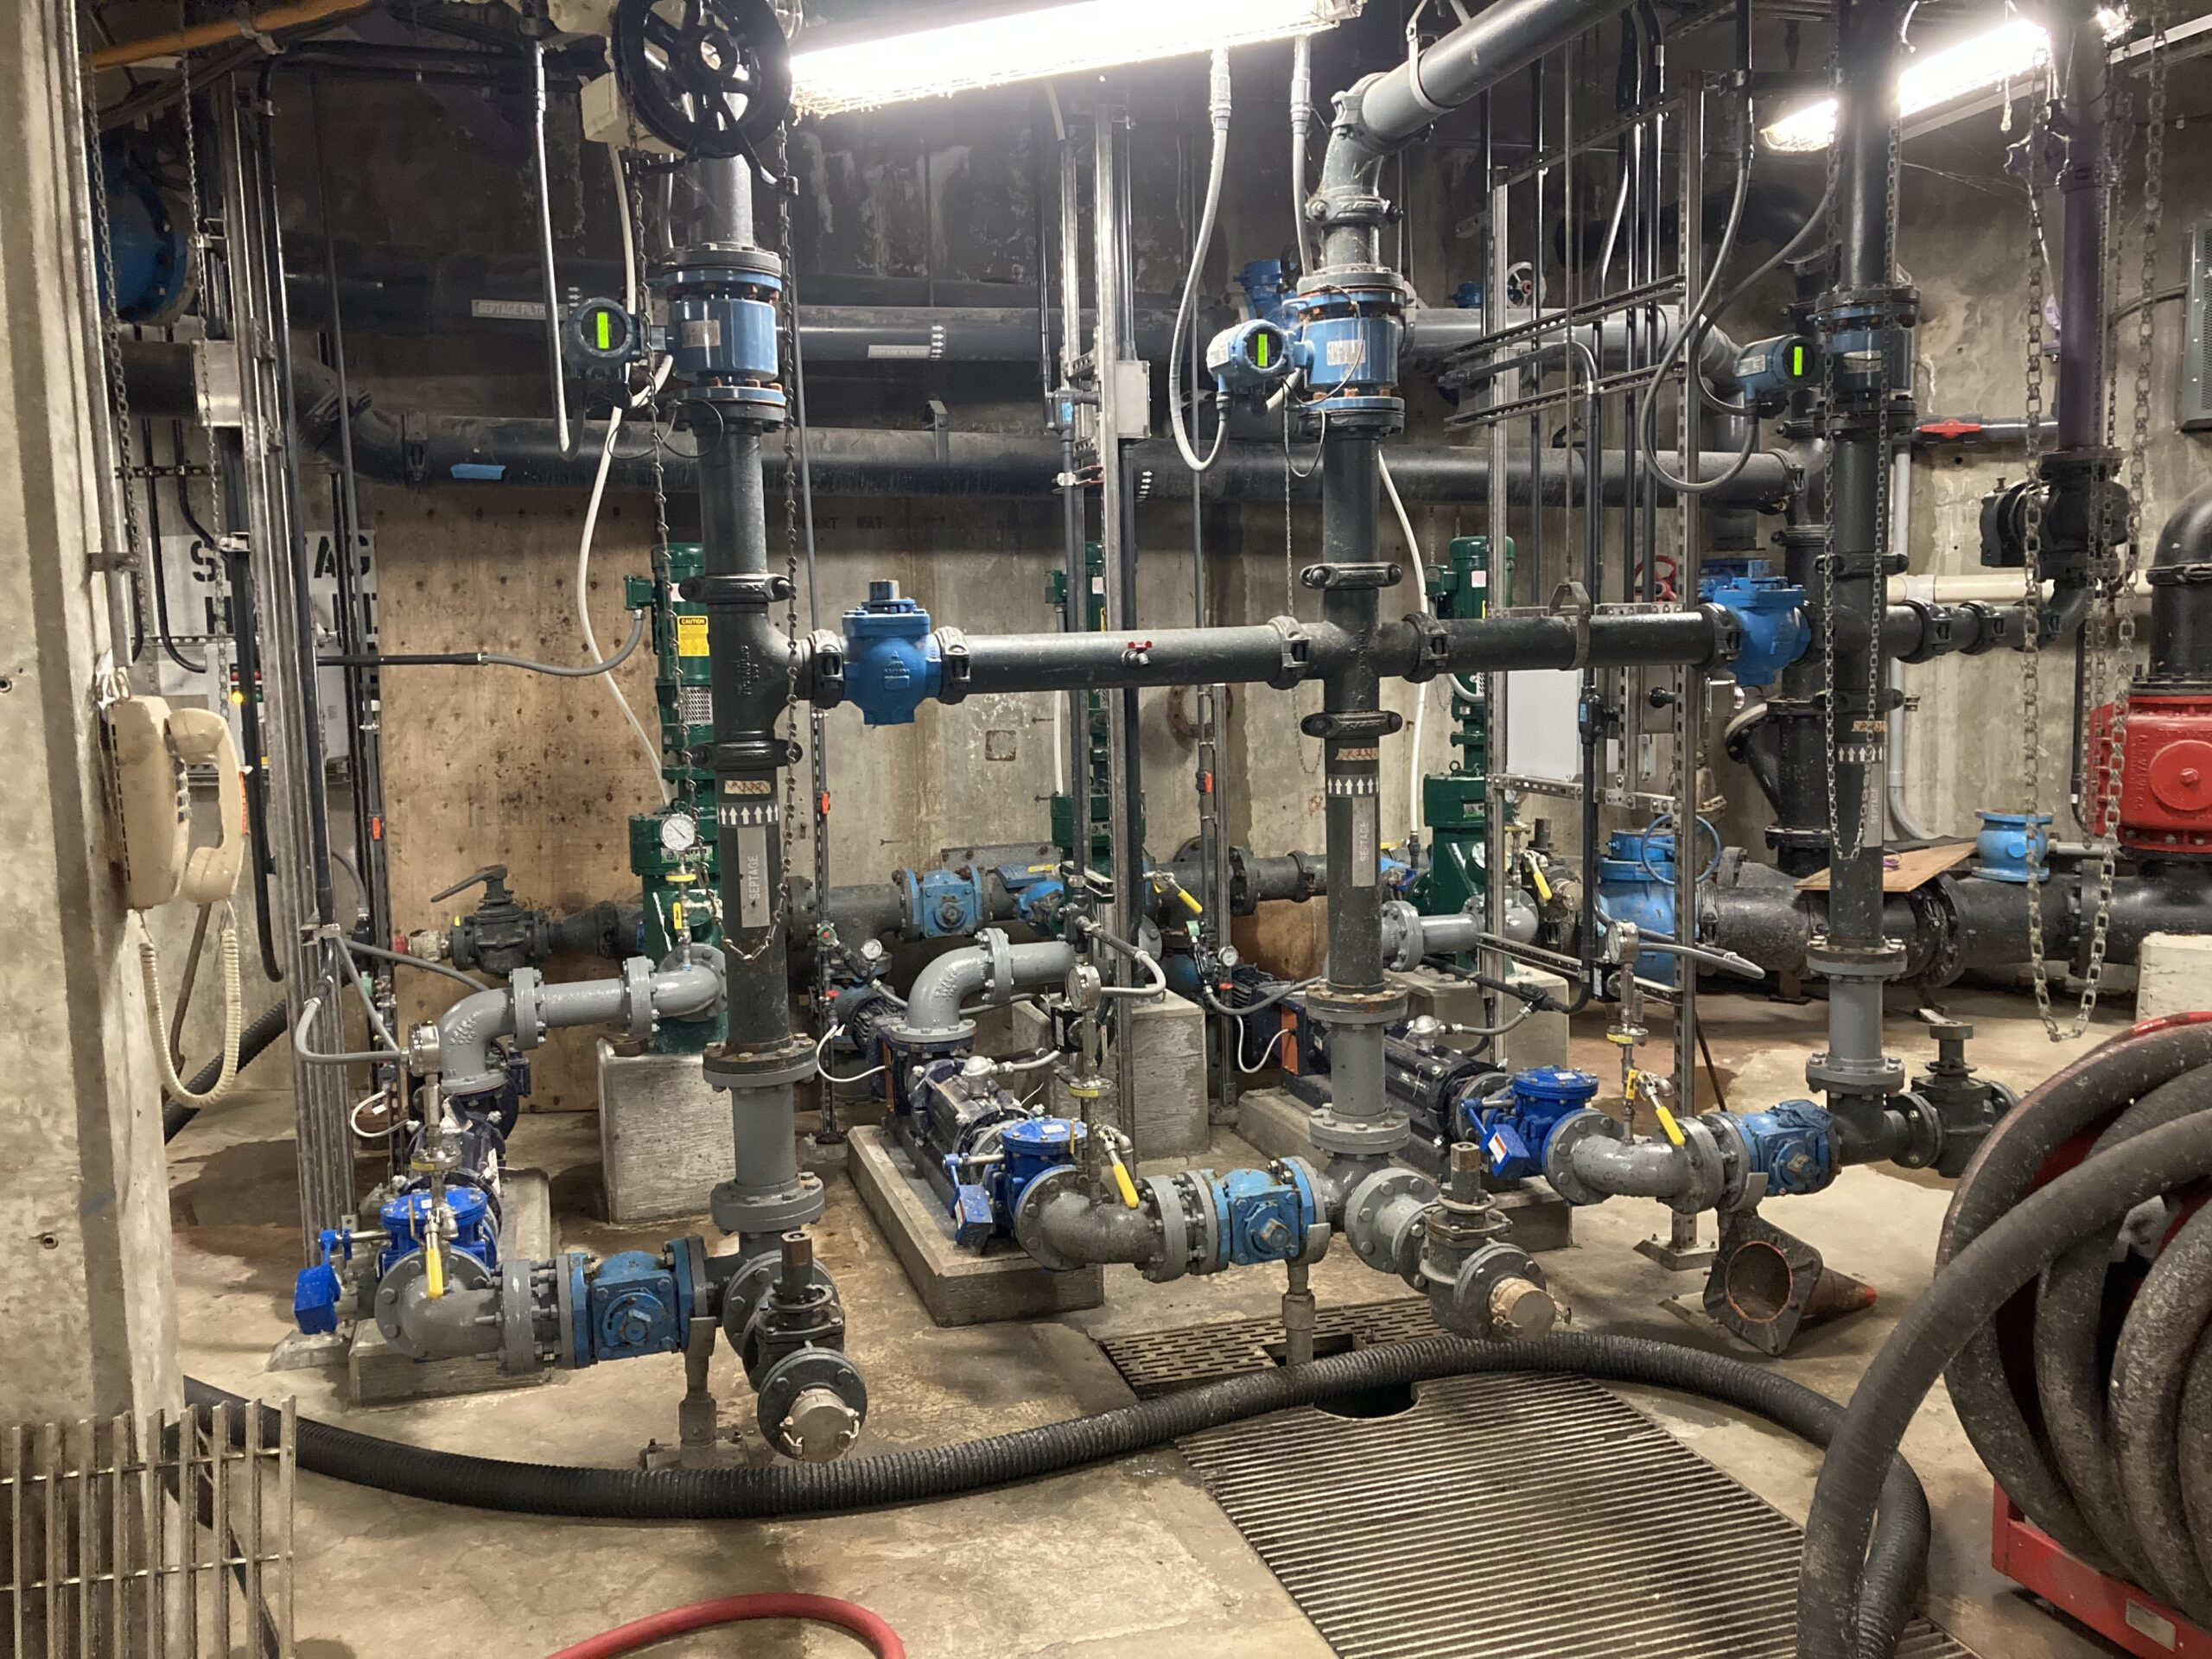 I1802-Septage Pumps & Piping